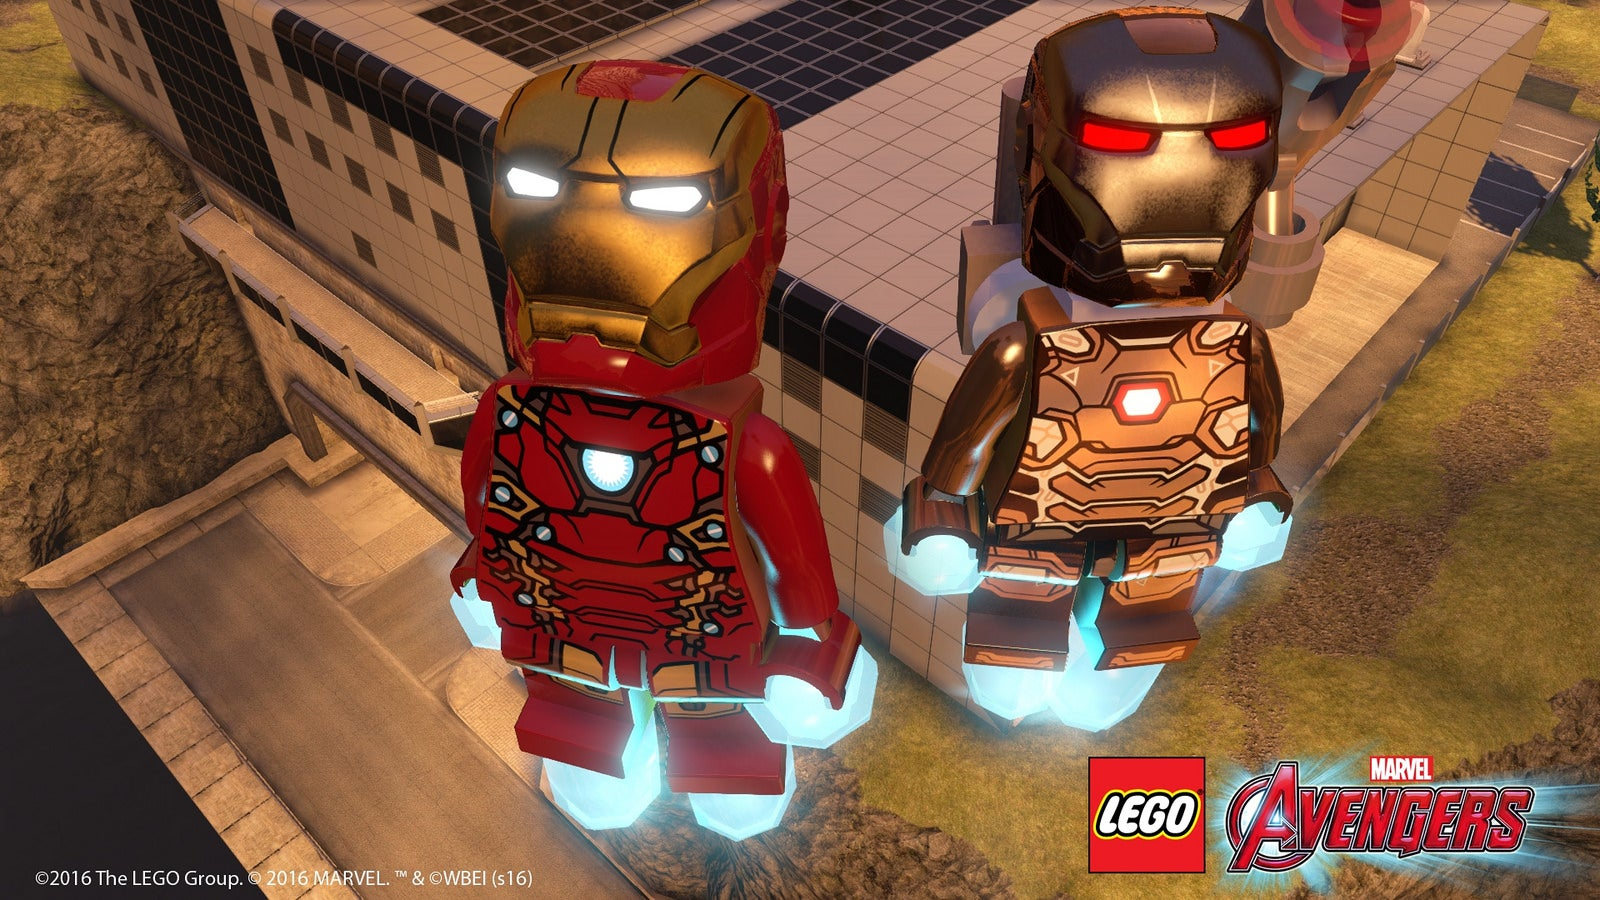 PlayStations Get Free Civil War And Ant-Man DLC For LEGO Avengers